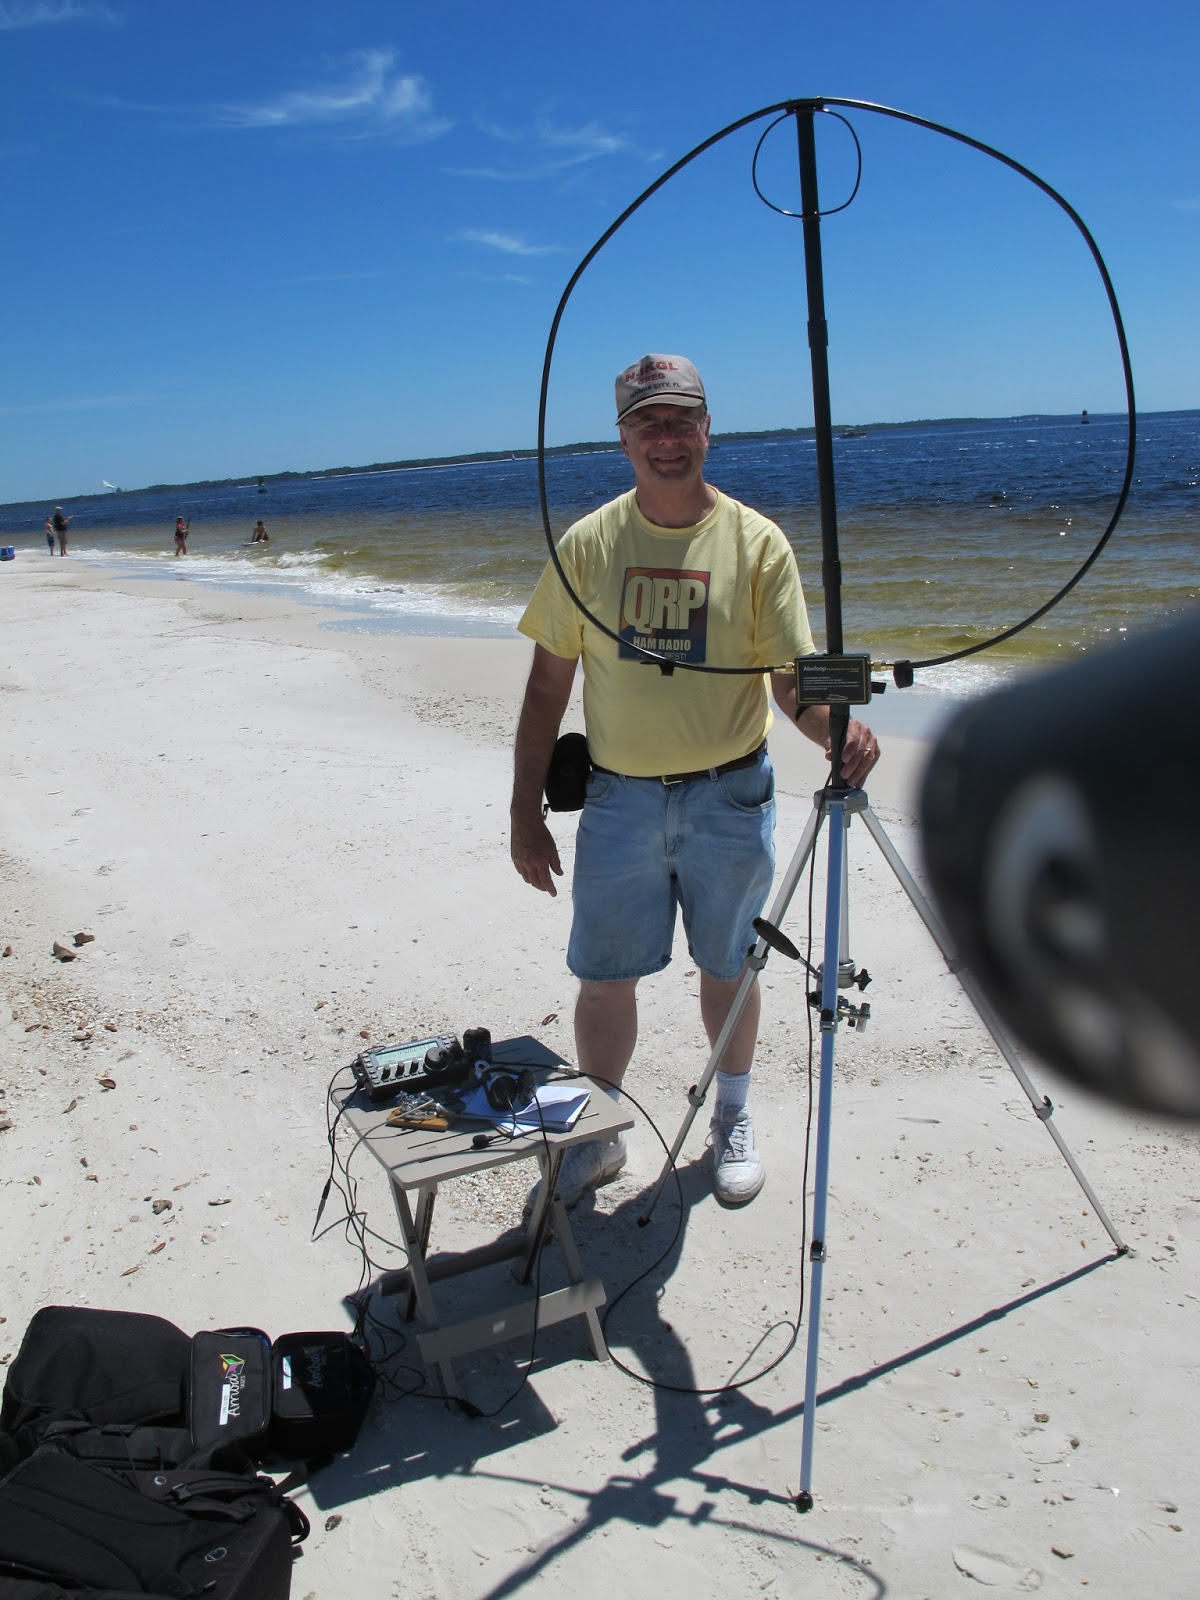 Travel QRP HF antennas